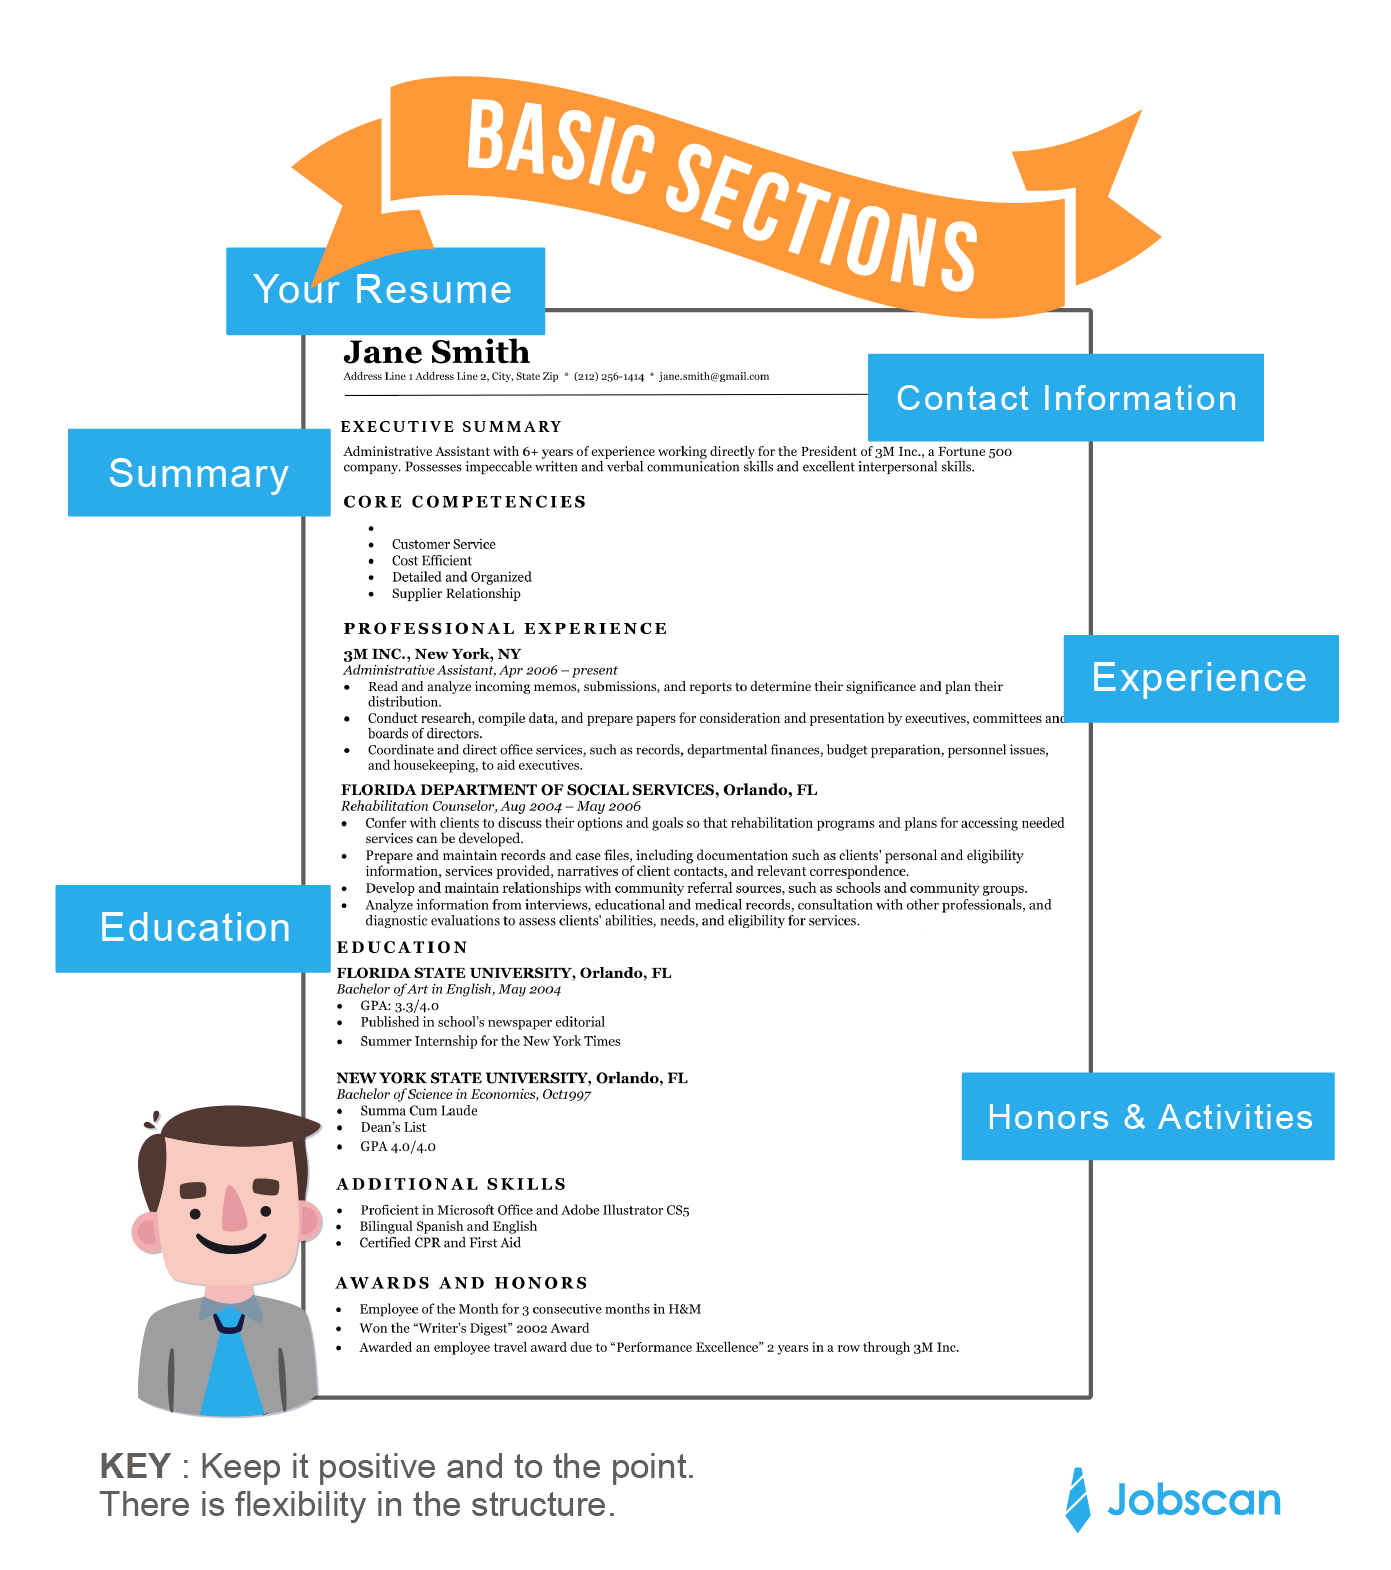 resume templates guide jobscan illustration of the basic sections of a chronological resume